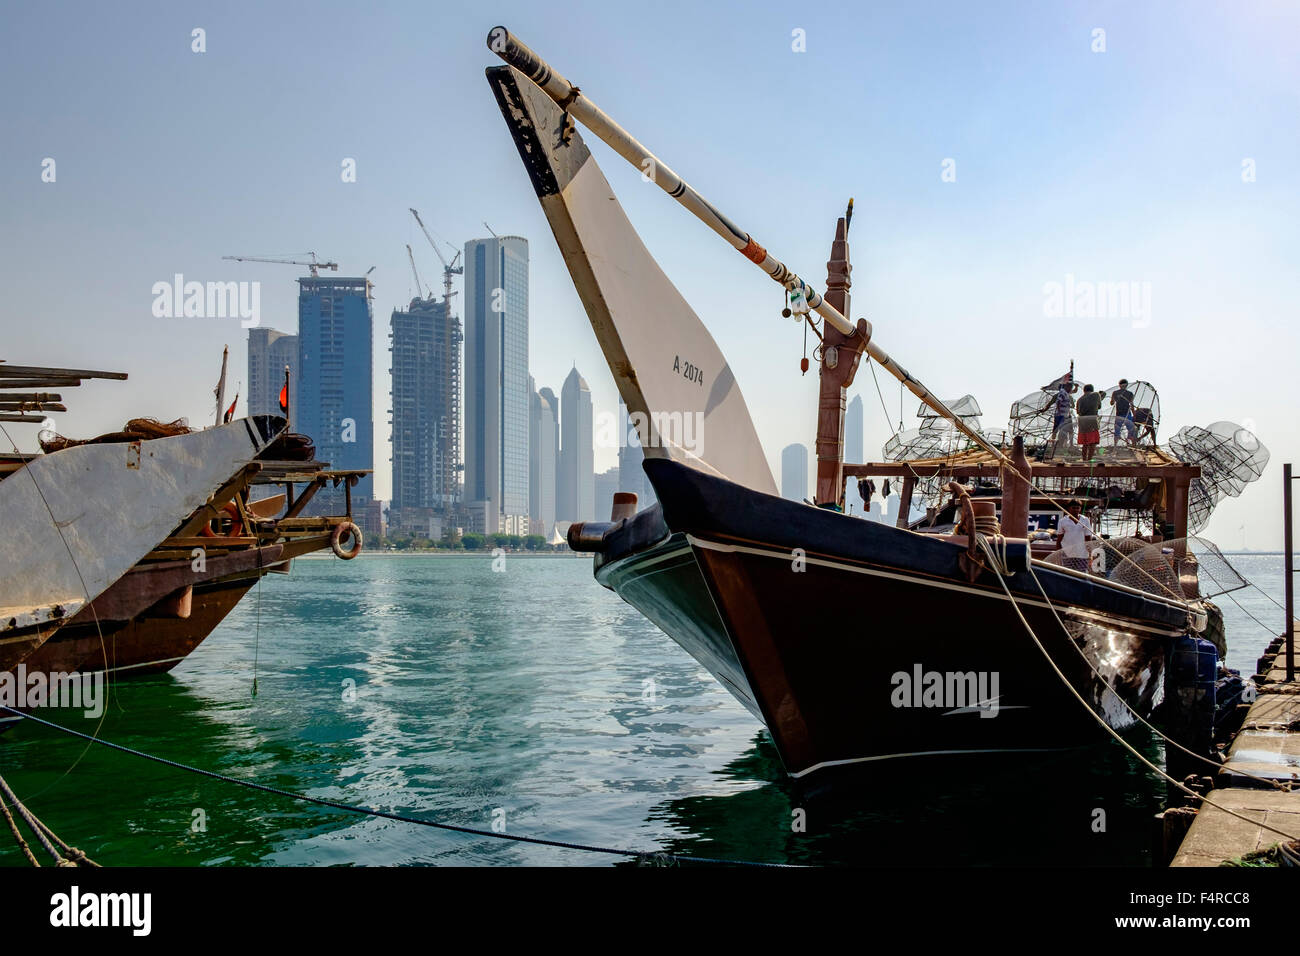 Traditional wooden dhow fishing boat in Abu Dhabi United Arab Emirates - Stock Image